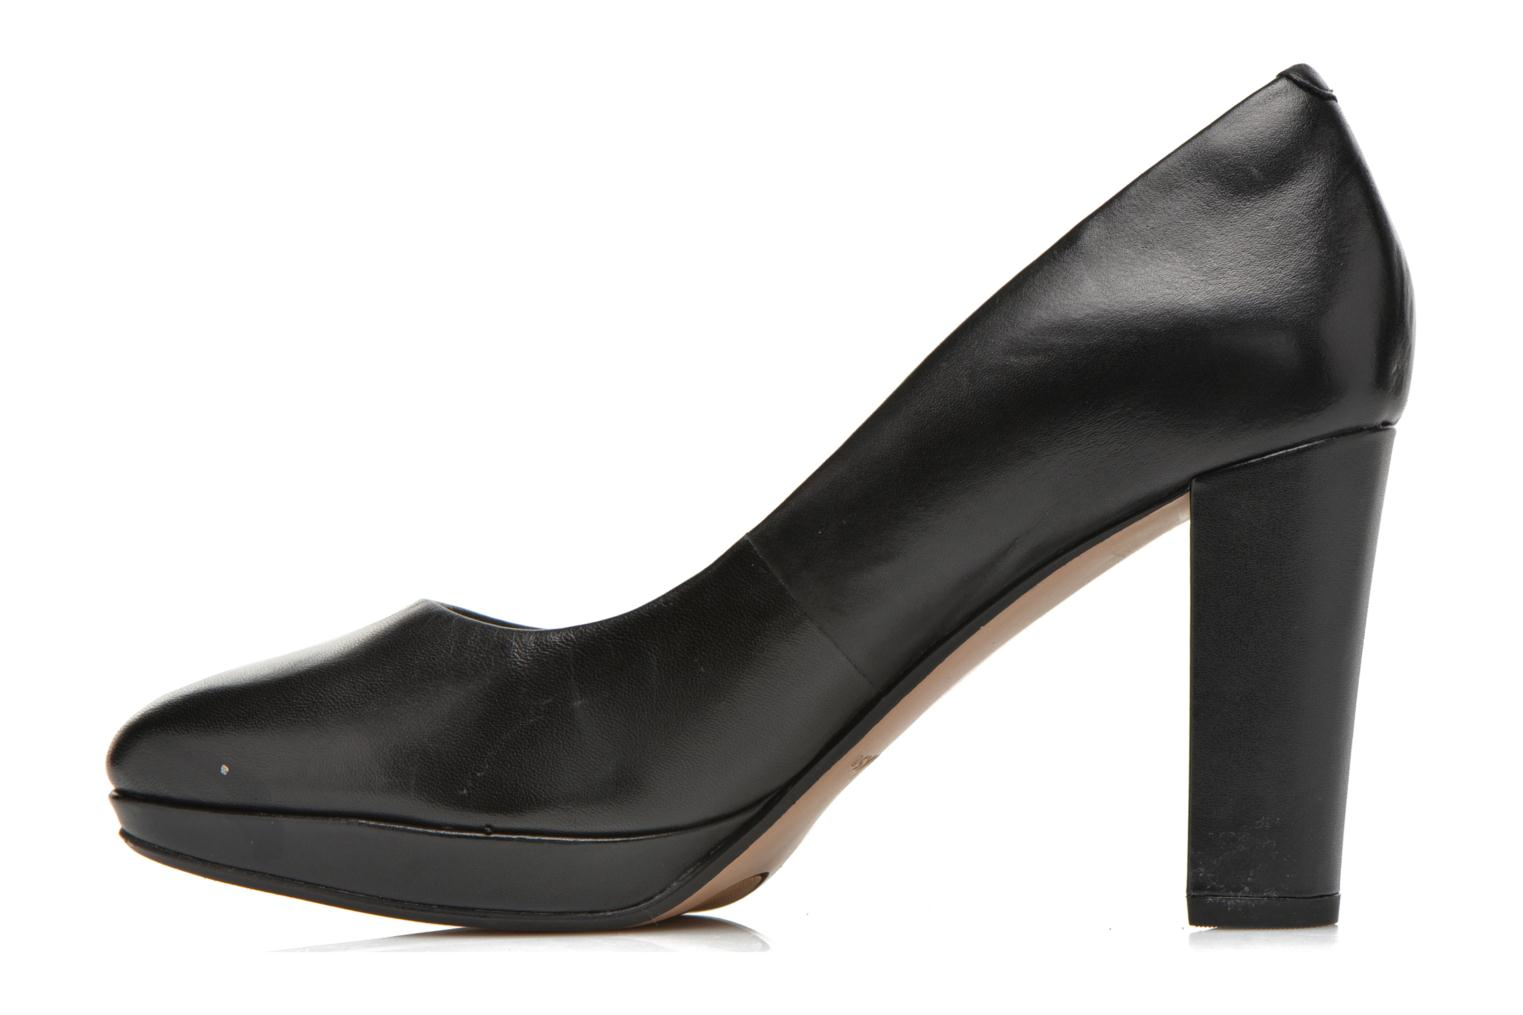 Kendra Sienna Black leather